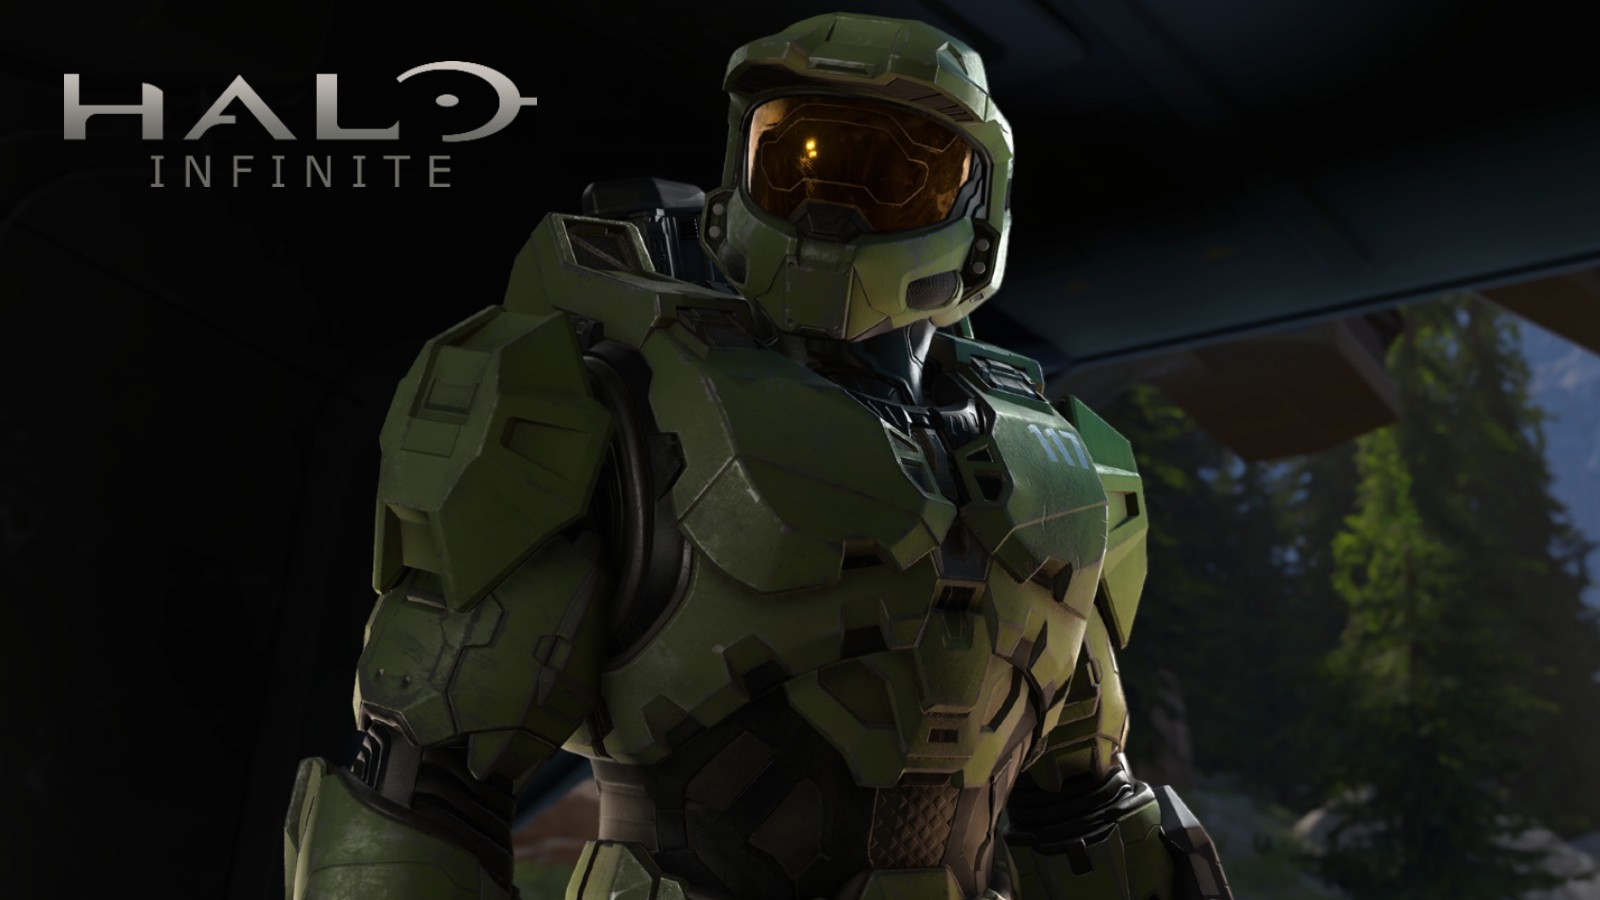 Halo Infinite Release Date Out: multiplayer & gameplay